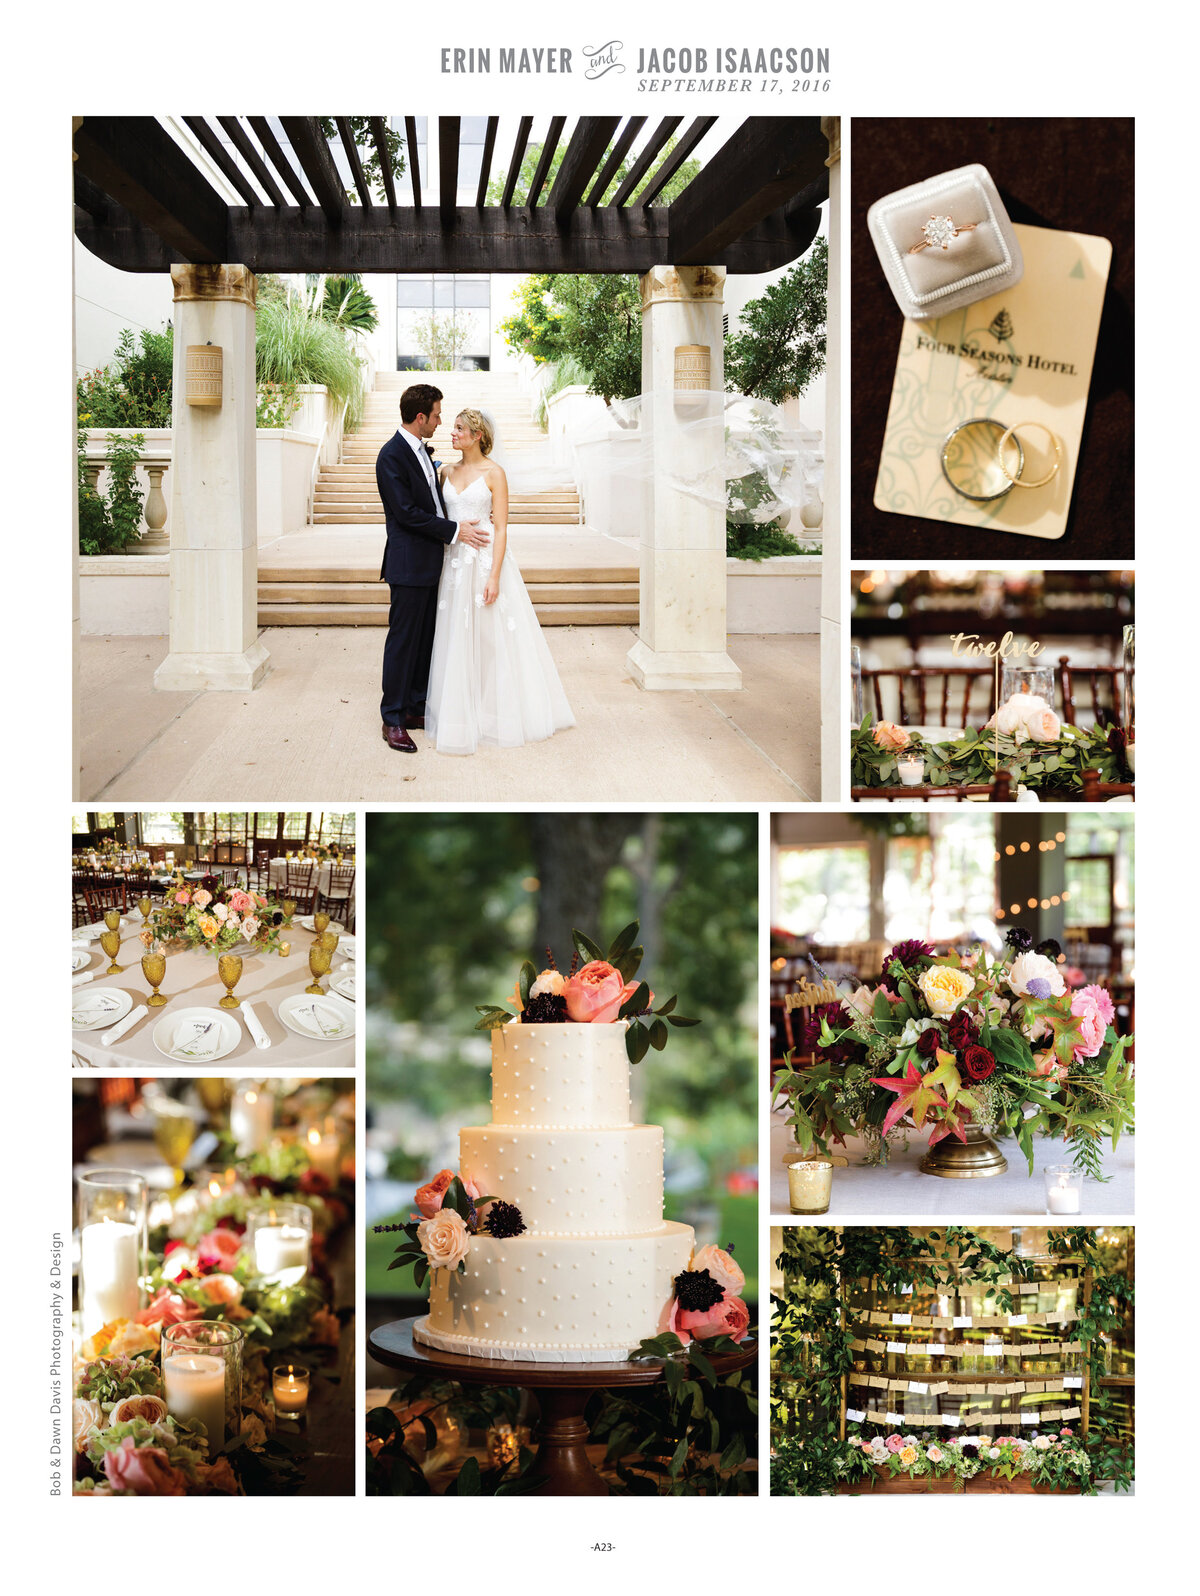 We absolutely love destination weddings and this one is no exception.  We are thrilled to see our couple, Erin and Jacob's wedding in the Spring/Summer 2017 edition of Brides of Austin magazine! It was a sweltering hot day in Austin and they were as cool as can be!  Thank you to Marcy Glink of Great Events who introduced us and planned this beautiful wedding. Click here for a list of vendors.